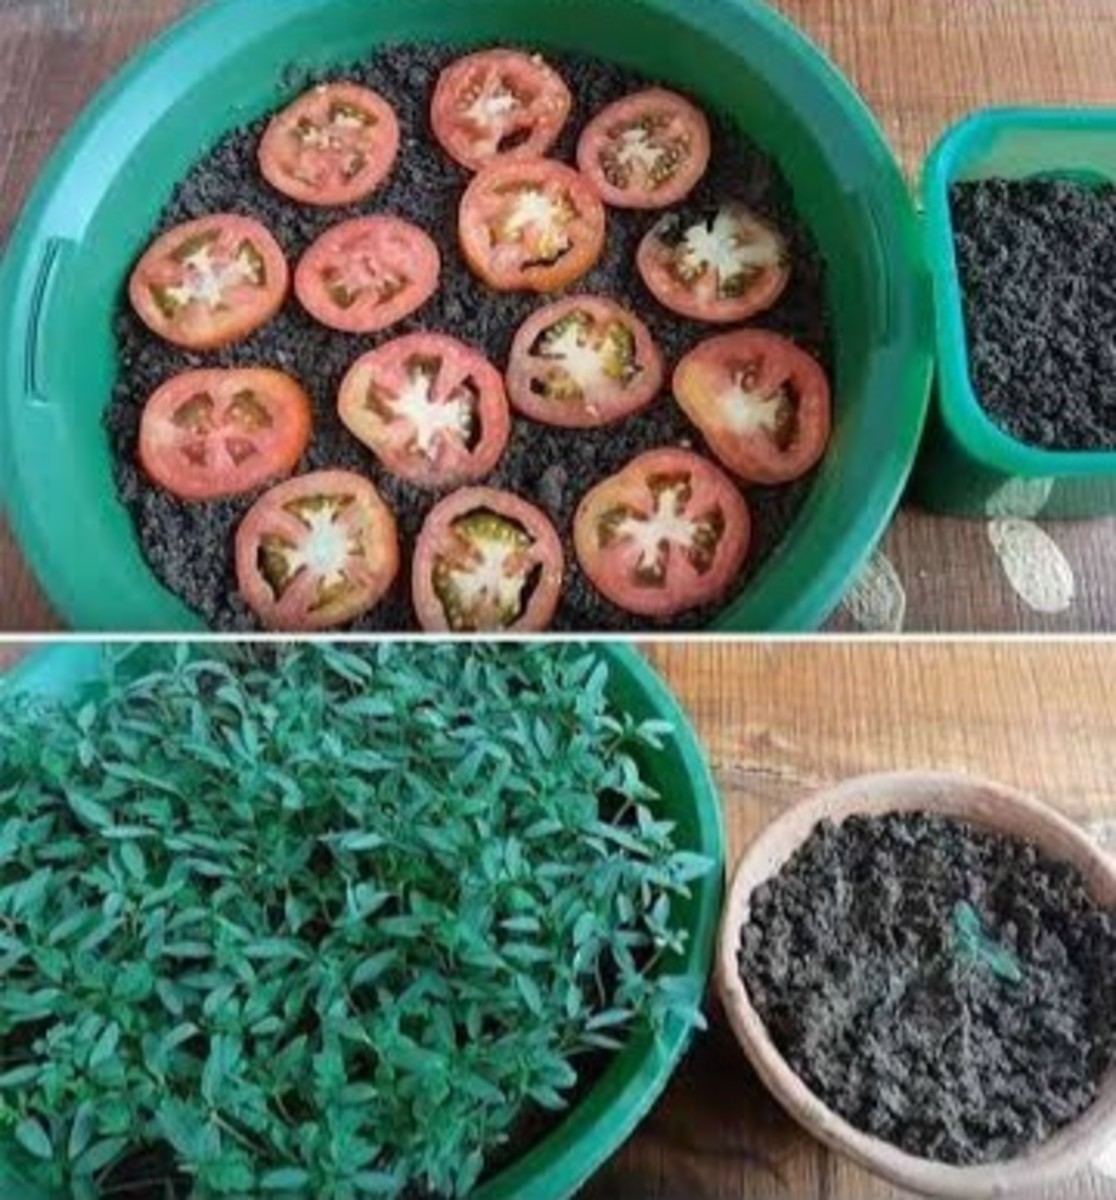 Tomato slices with their seeds still attached can grow into new plants.